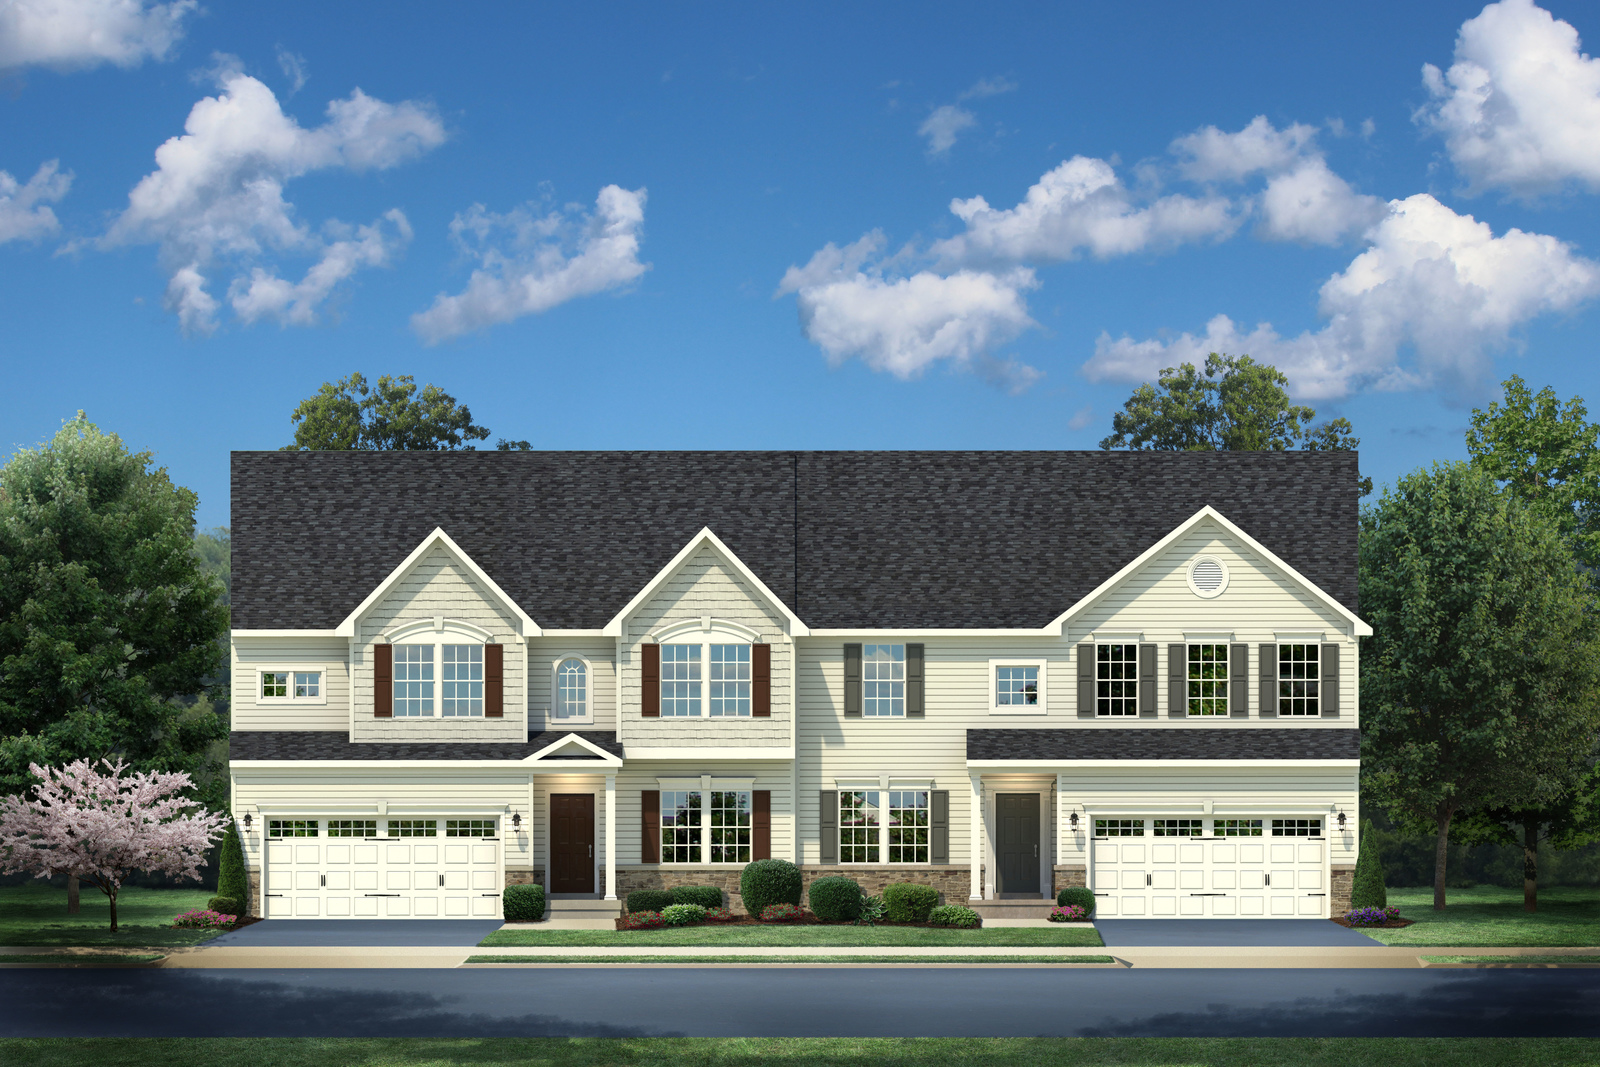 High Hook Farms Carriage Homes